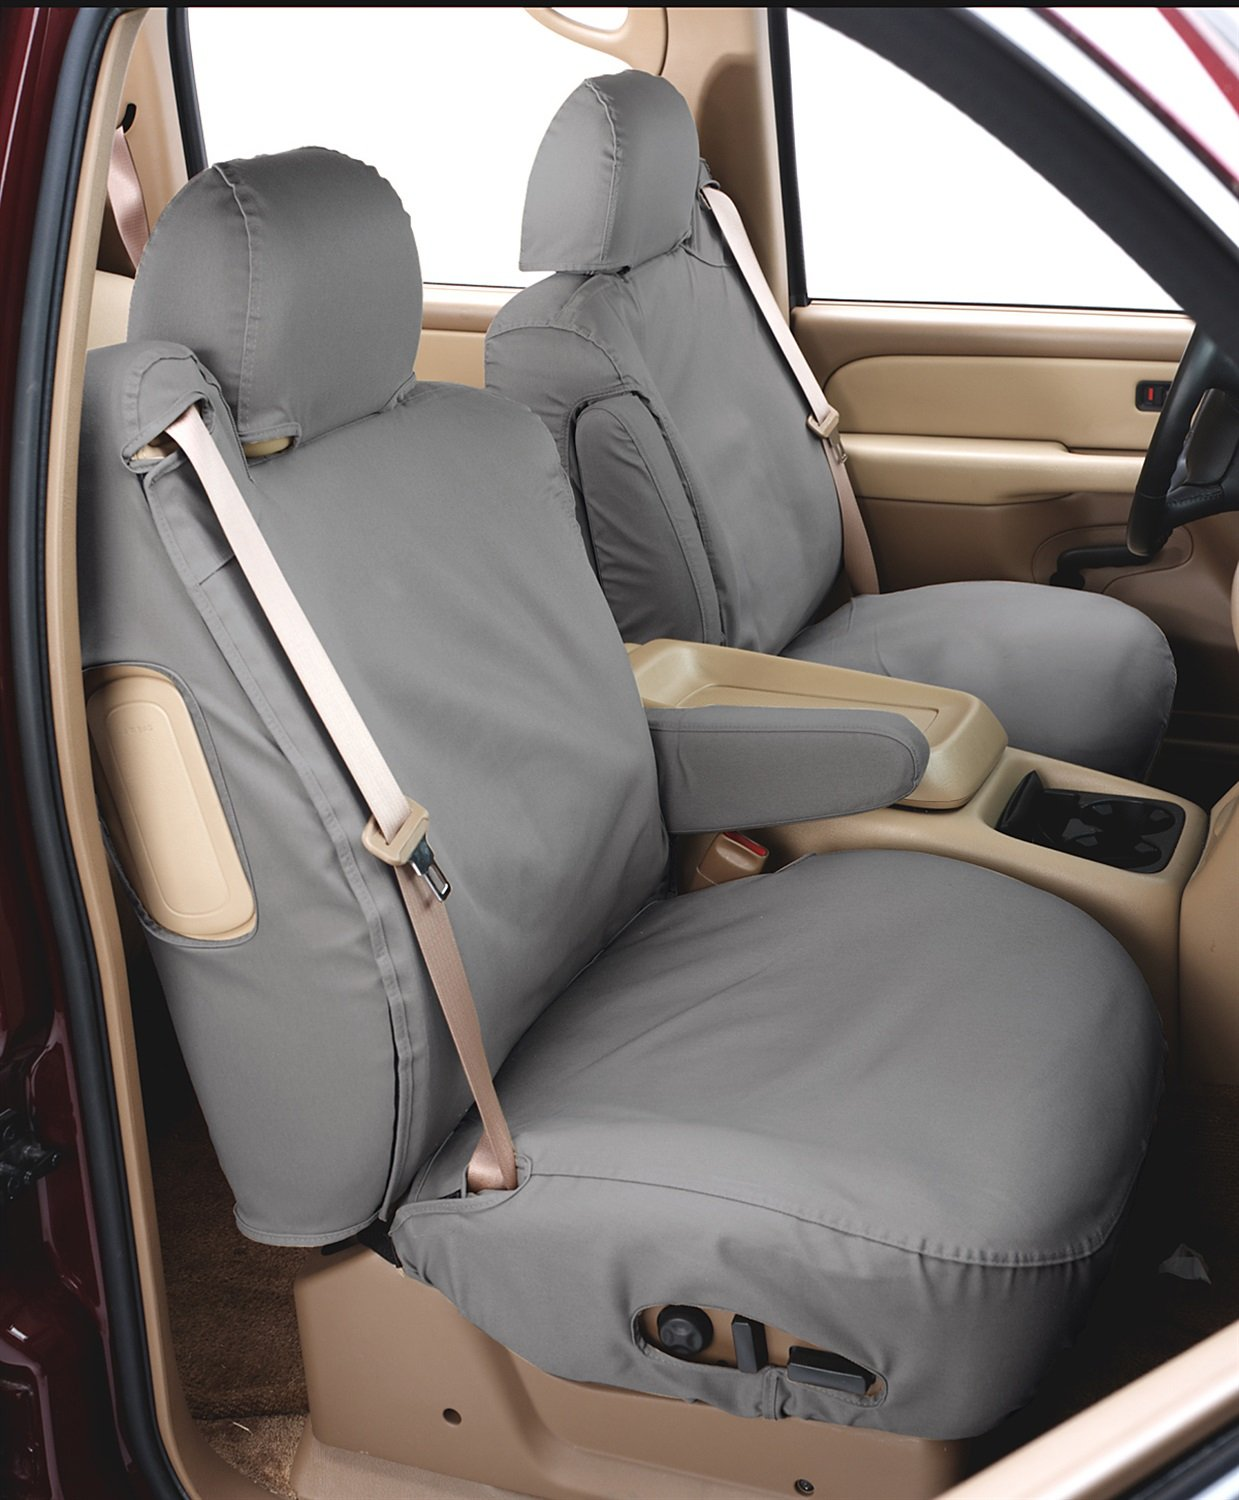 Covercraft SeatSaver Front Row Custom Fit Seat Cover for Select Ford Escape Models Grey Waterproof SS2462WFGY